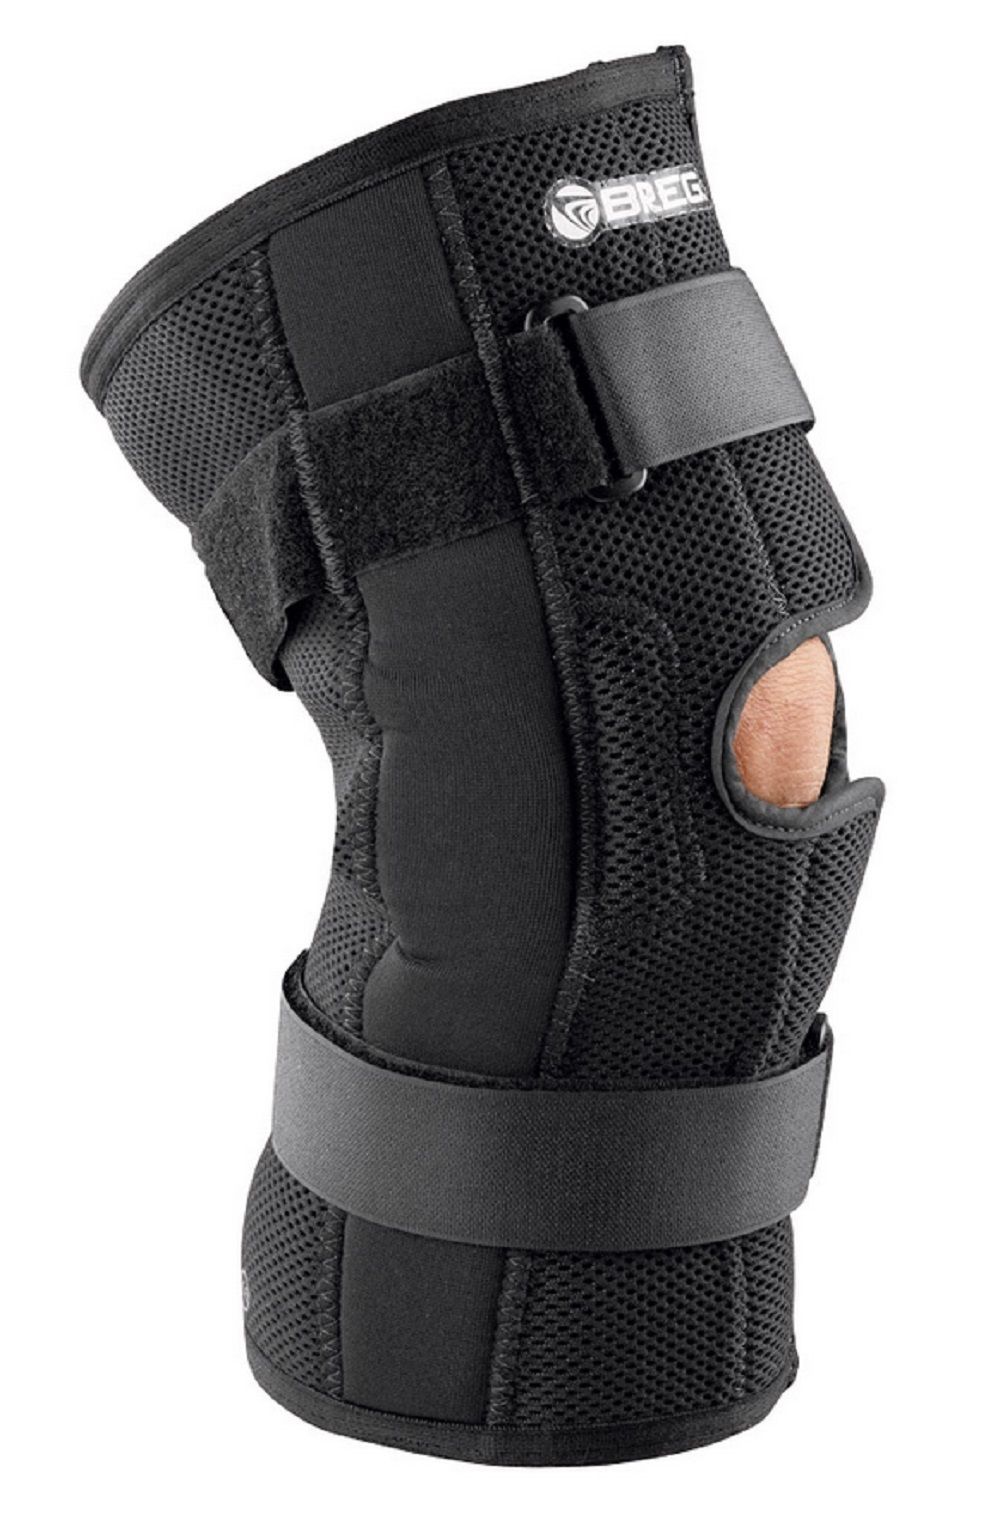 e77a76a830 Breg Economy Hinged Soft Knee Brace With Airmesh Material 1123X   eBay